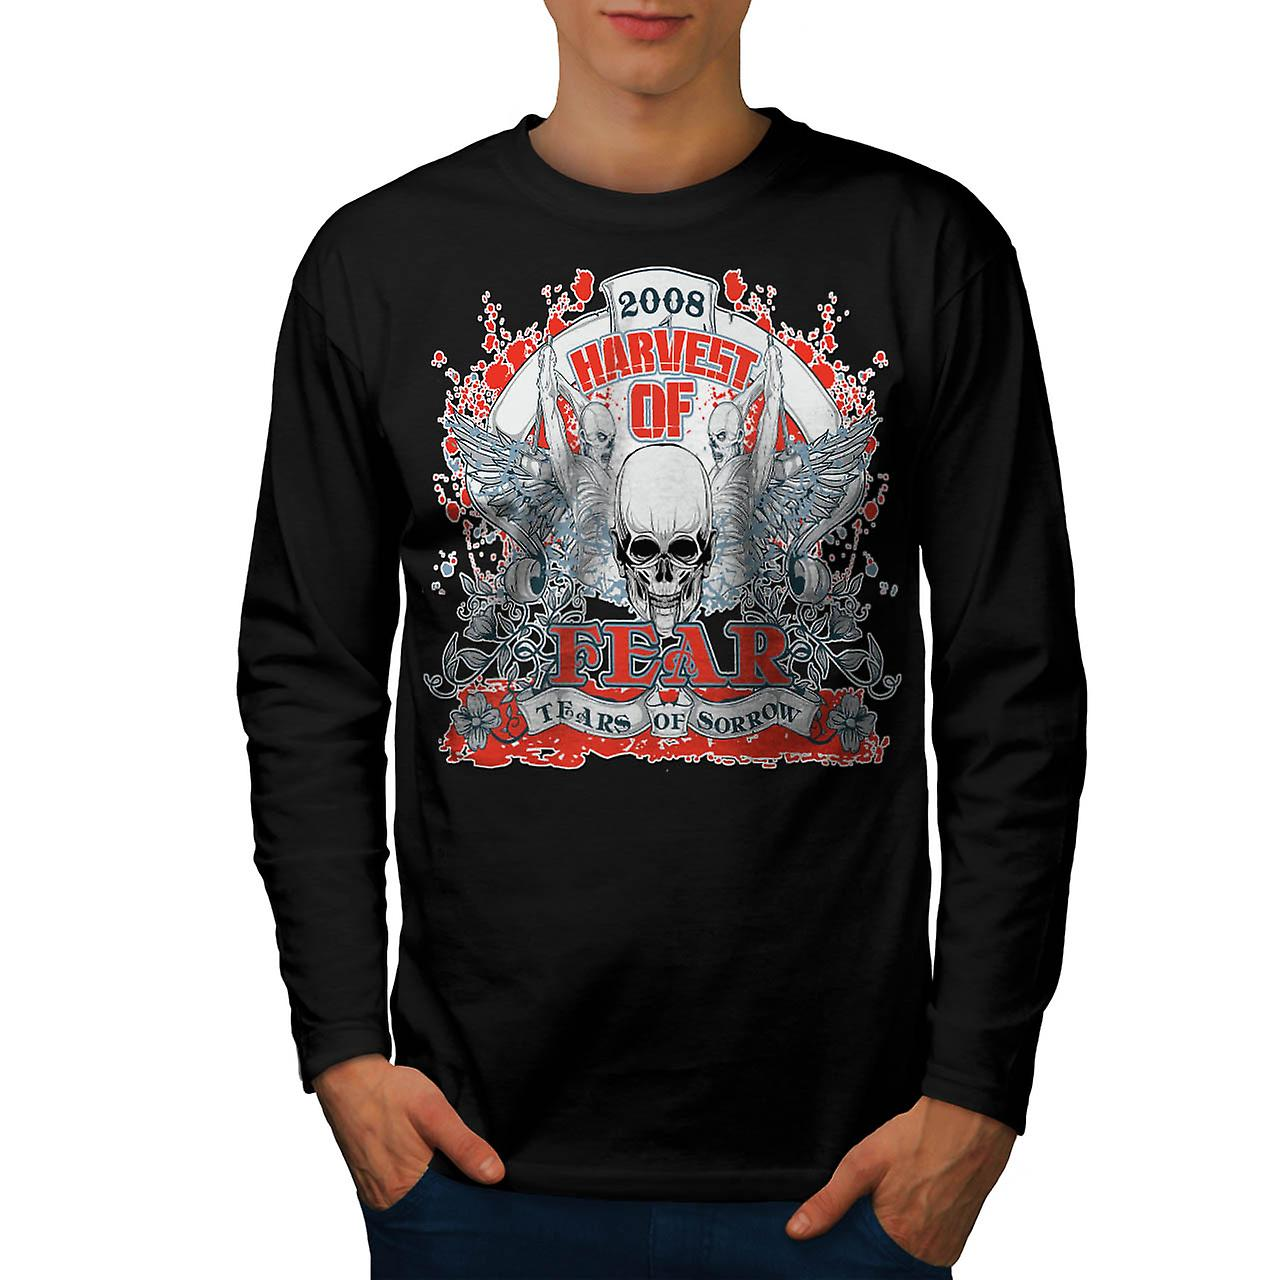 Harvest Of Fear Skull Tears Wing Men Black Long Sleeve T-shirt | Wellcoda